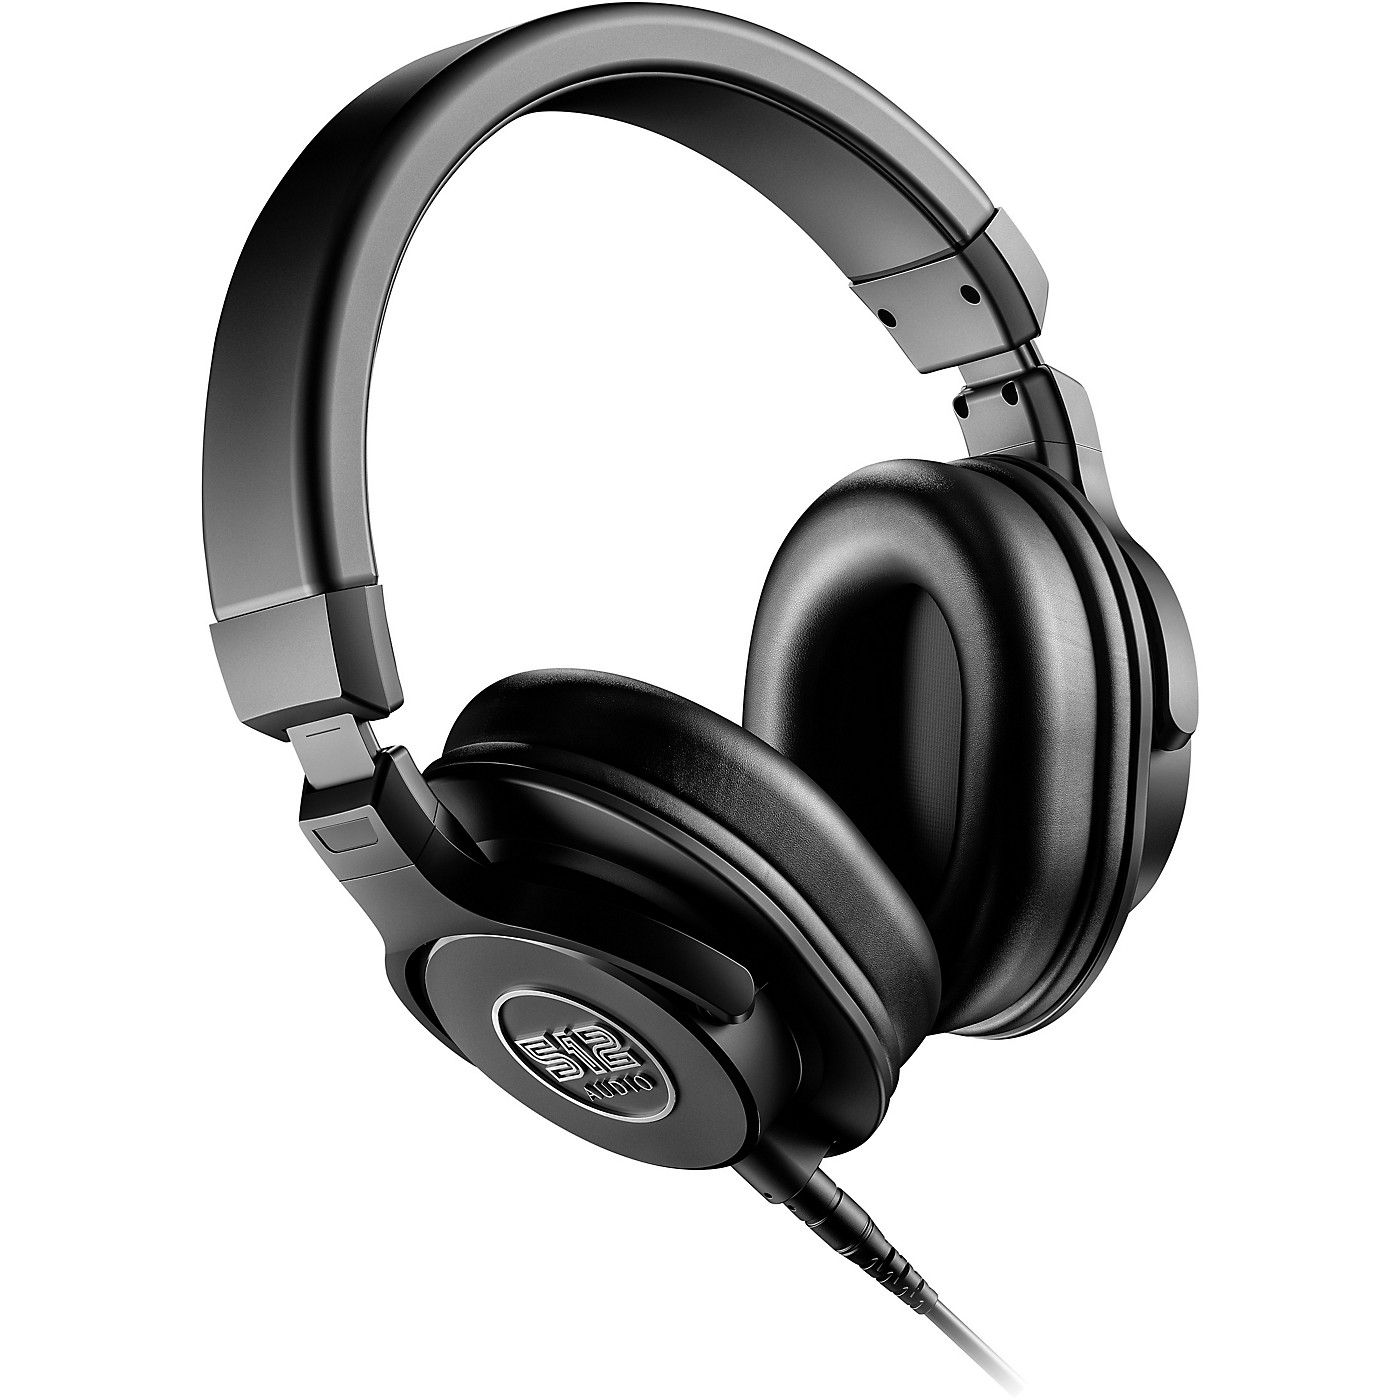 512 Audio Academy Studio Monitor Headphones for Recording, Podcasting or Broadcasting thumbnail